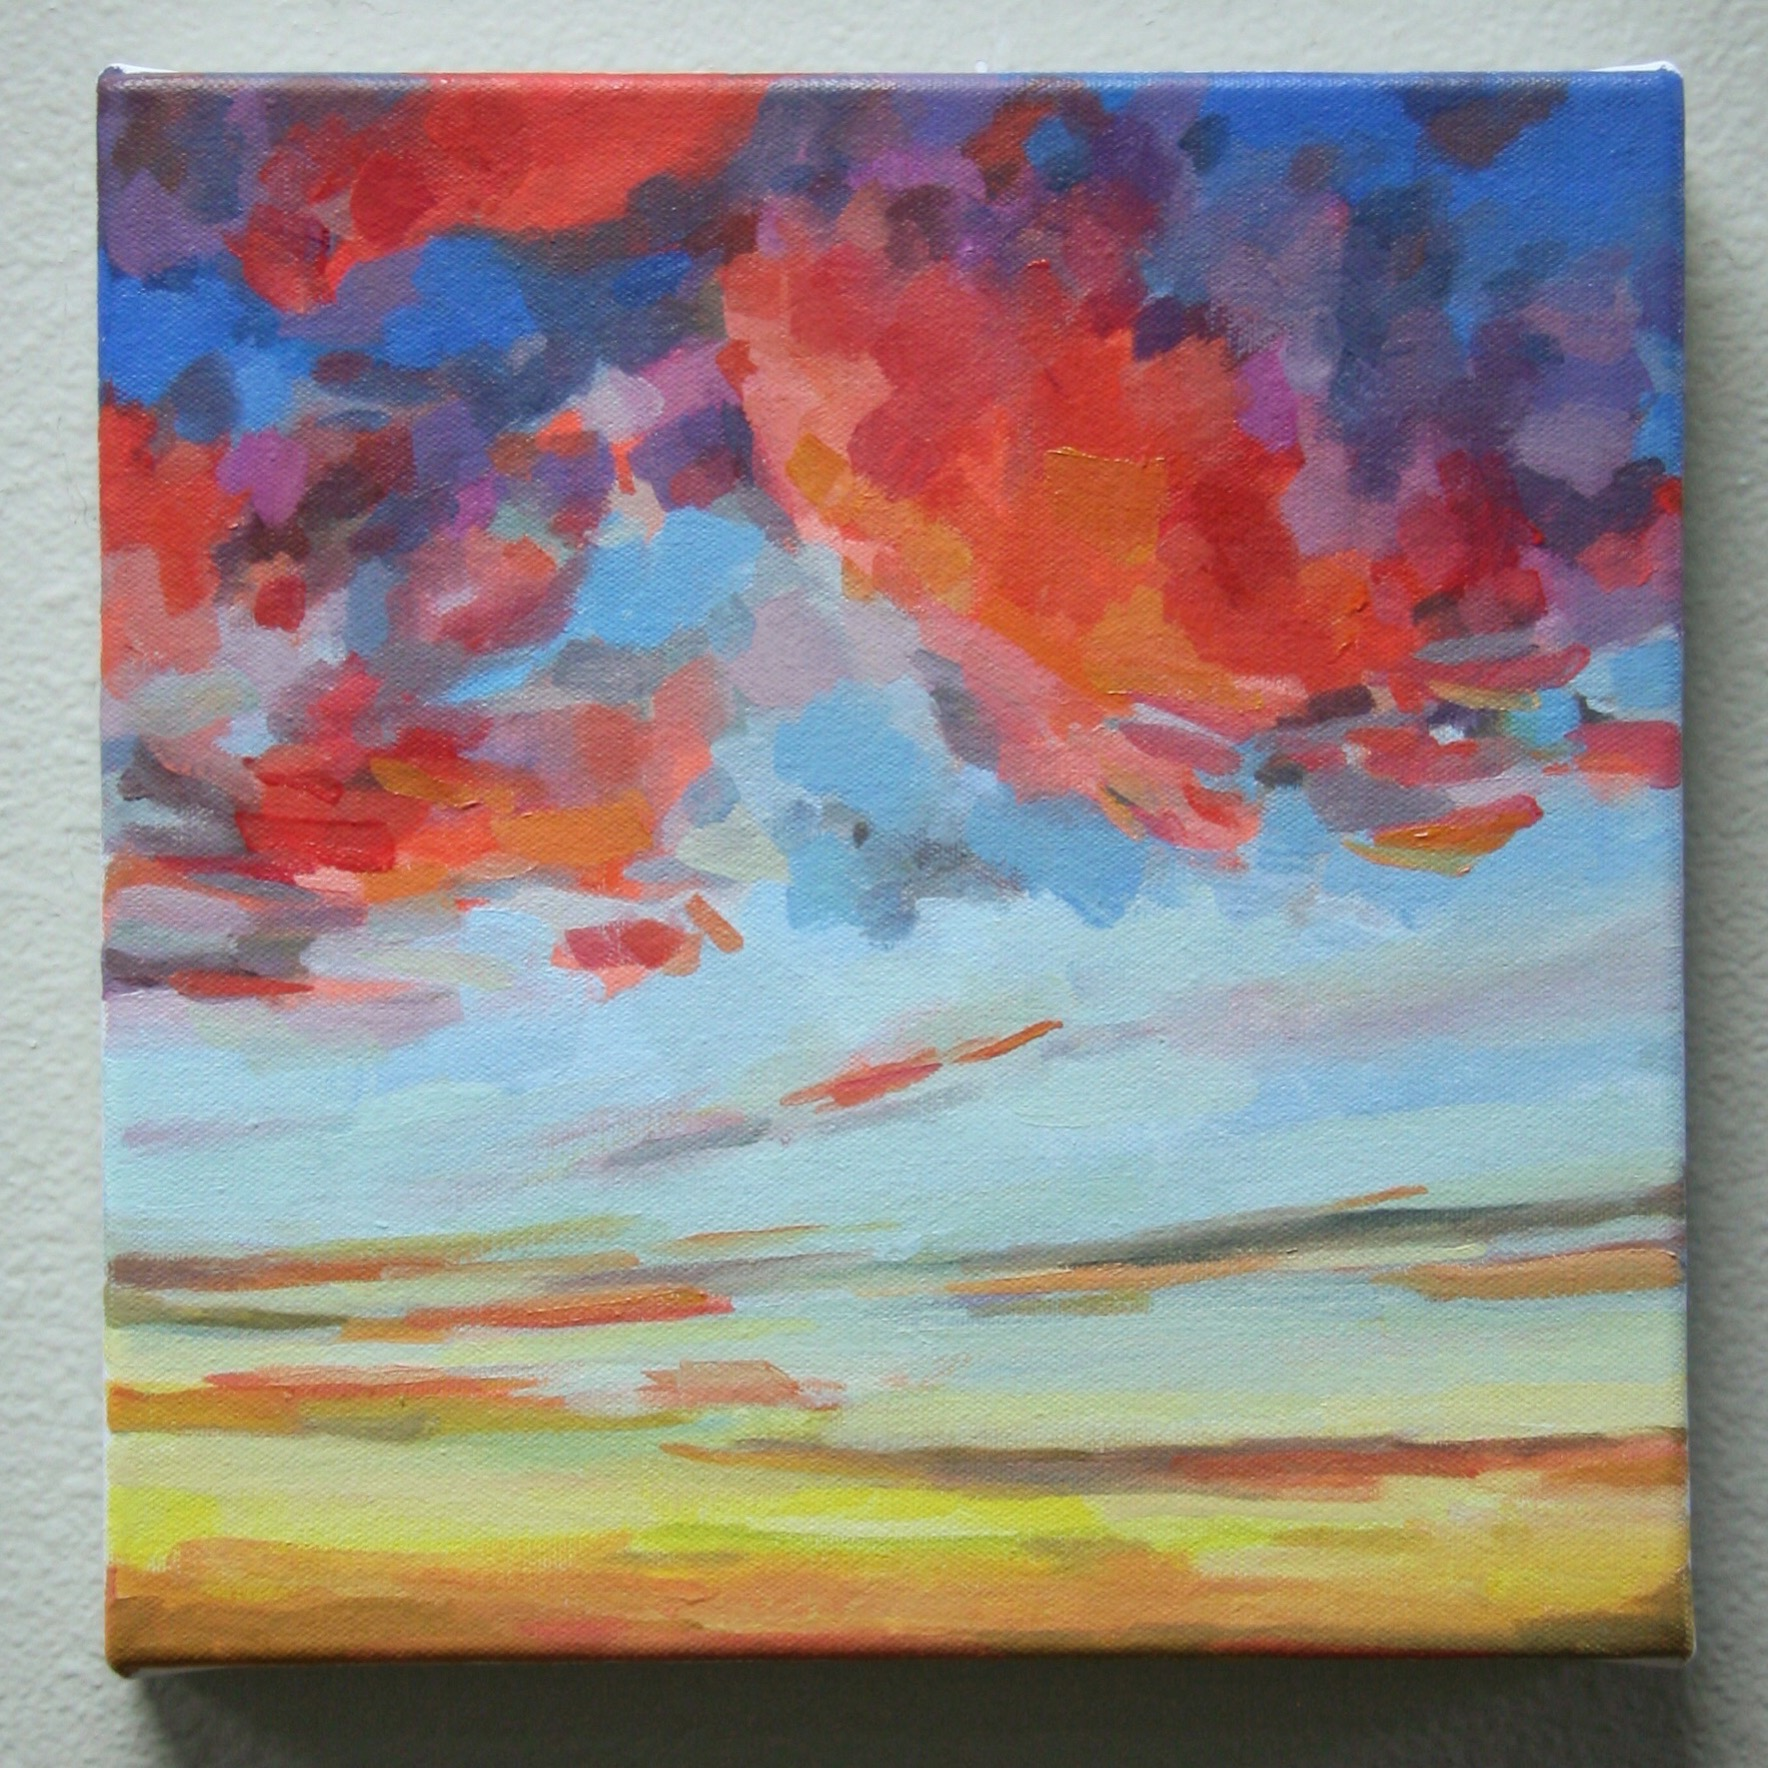 """'Sorbet Sky'. 2015. Water solube oil on canvas. 12"""" x 12"""""""